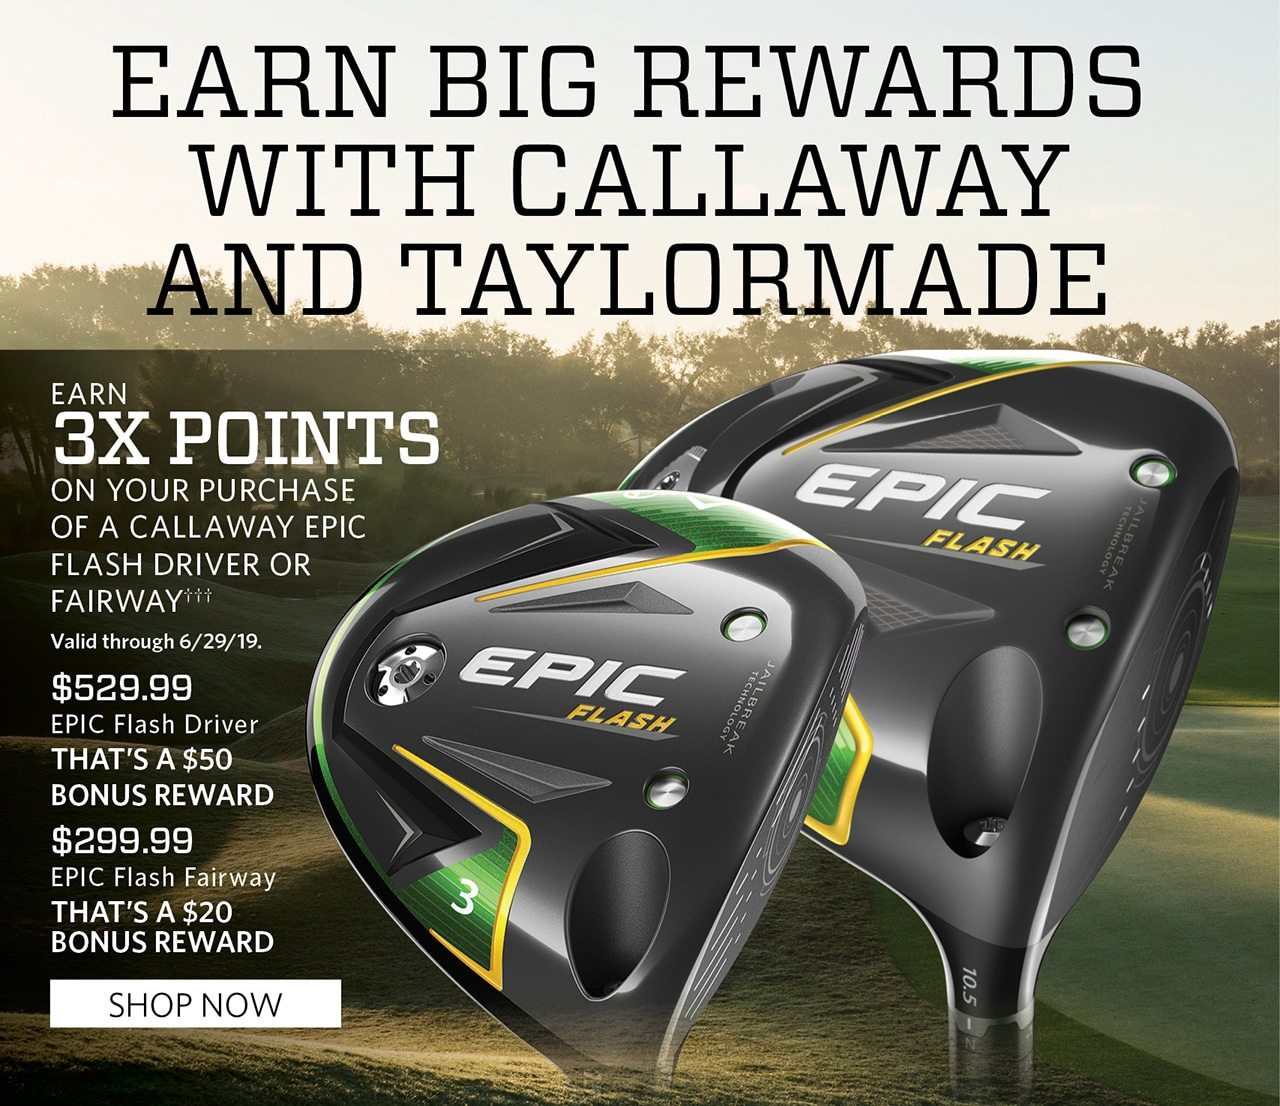 Earn Big Rewards With Callaway and TaylorMade. Earn Triple Points on your purchase of a Callaway Epic Flash Driver or Fairway††† Valid through 6/29/19. $529.99 EPIC Flash Driver, That's a $50 bonus Reward! $299.99, EPIC Flash Fairway. That's a $20 bonus Reward! SHOP NOW